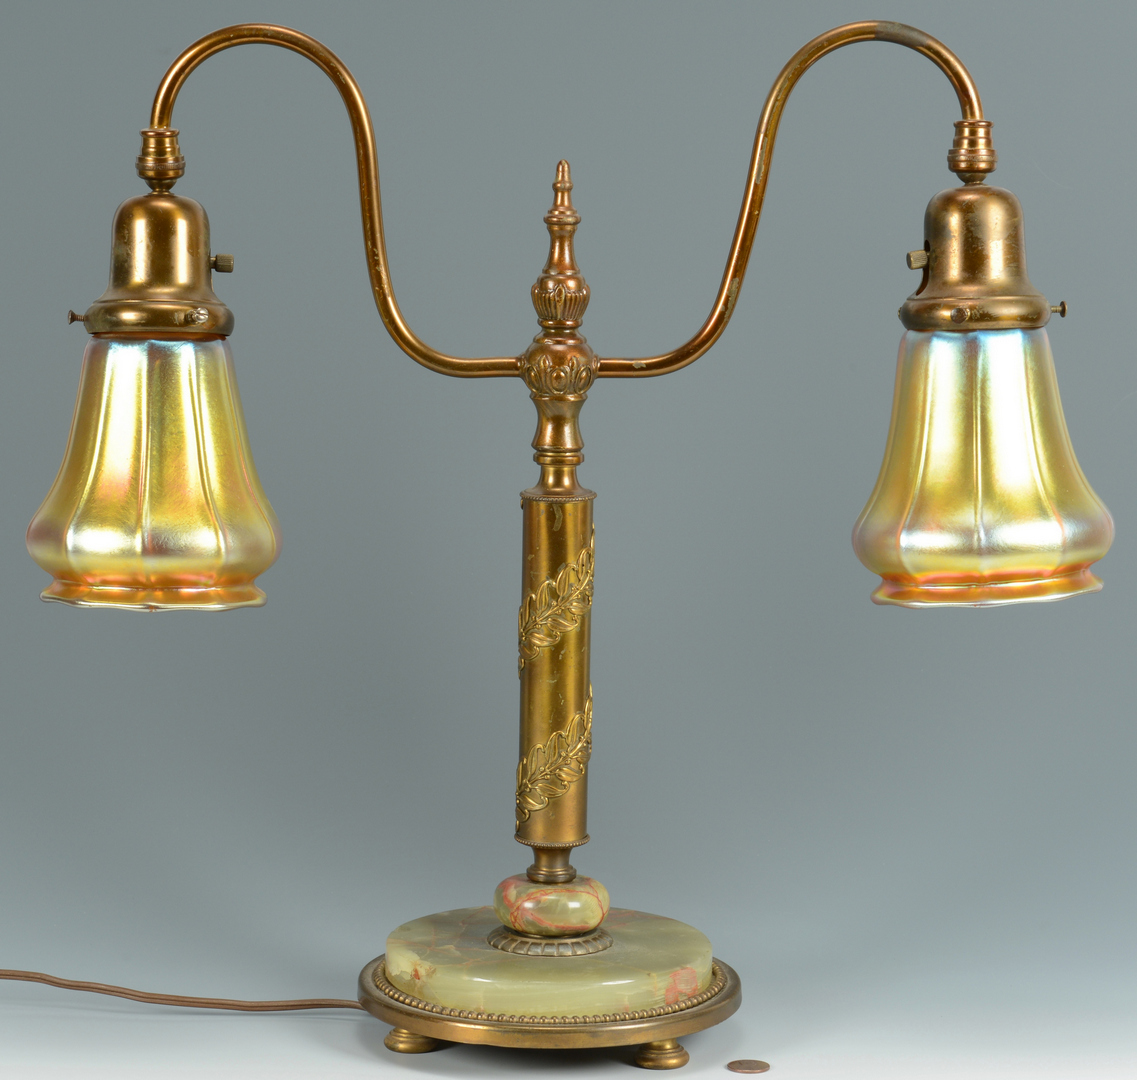 Lot 3088102: Student Lamp w/ Art Glass Shades, Steuben